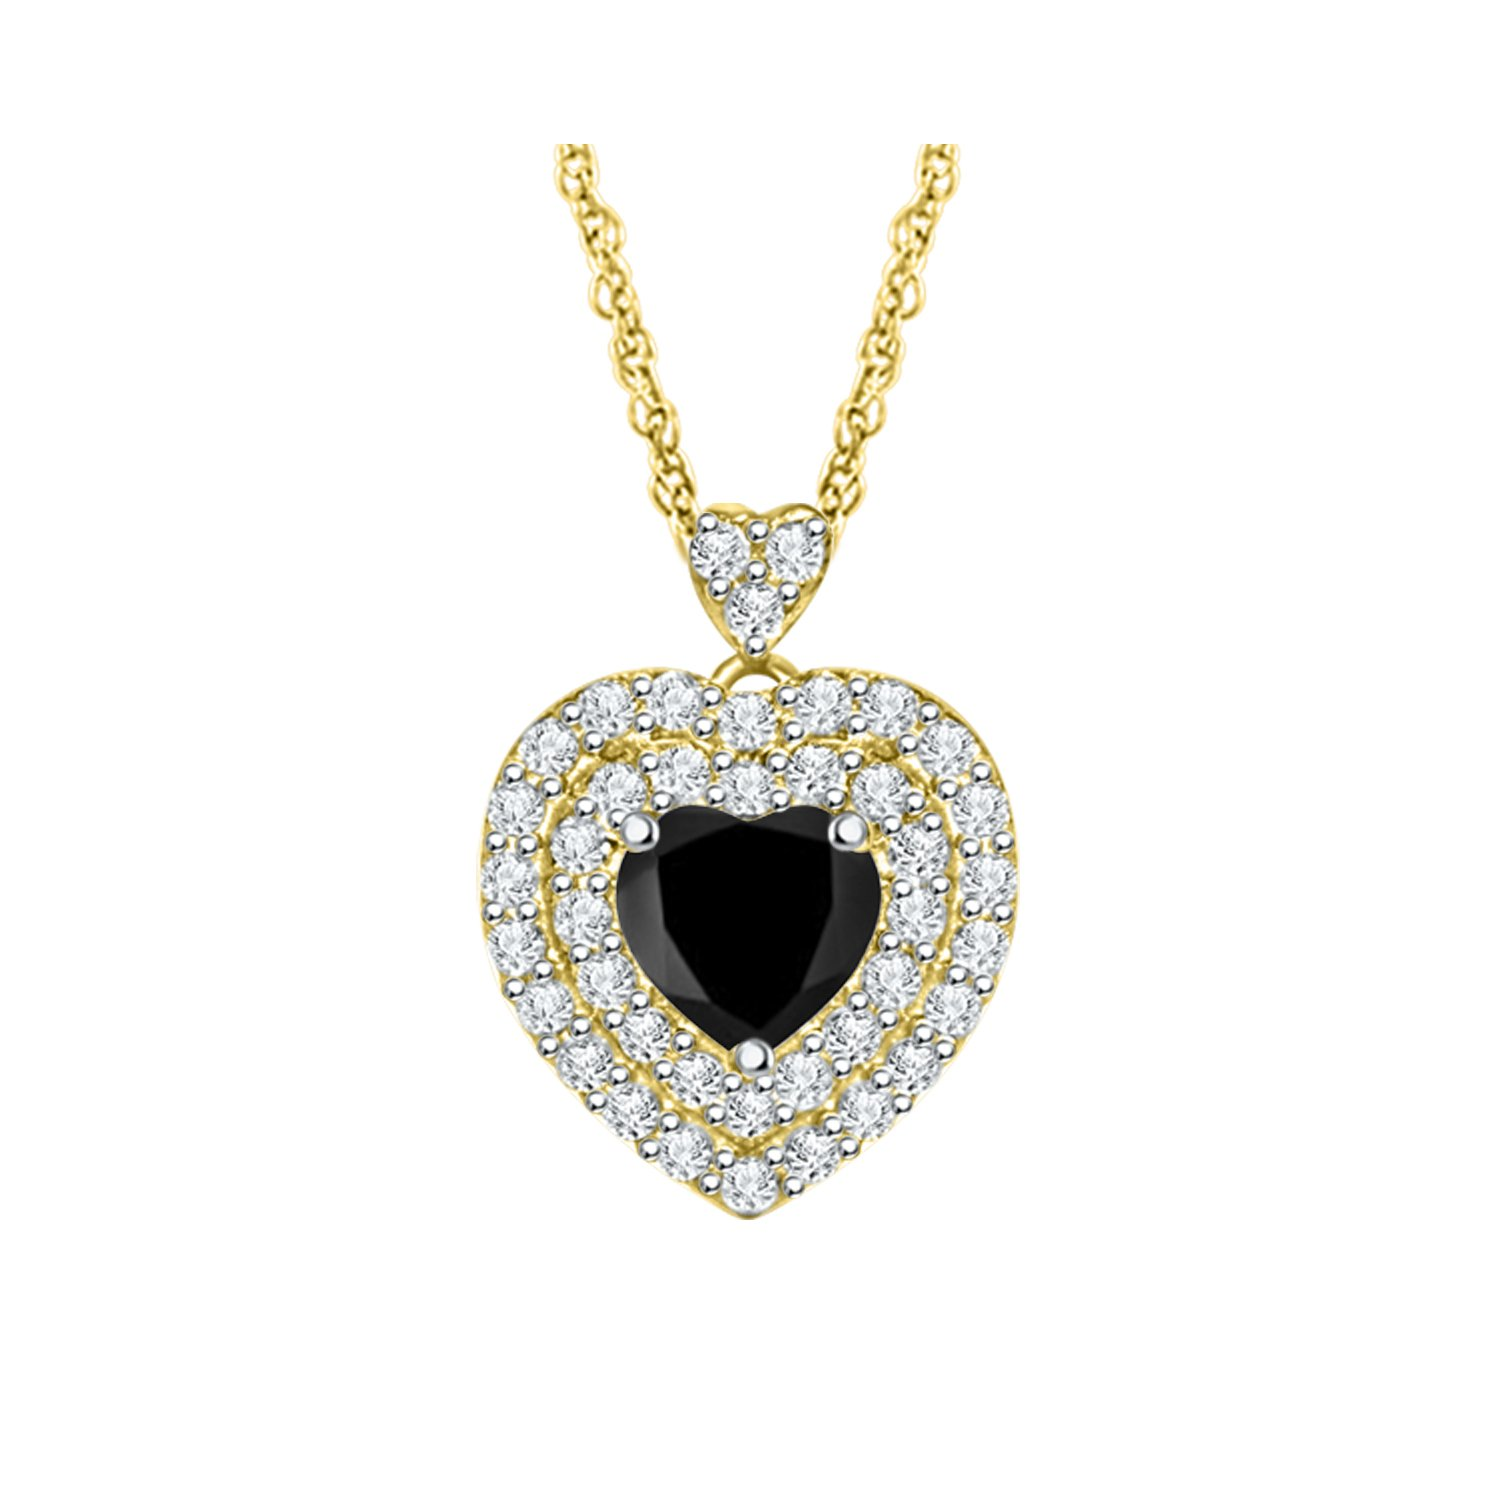 Diamond Scotch Valentines Day 14k Yellow Gold Over 1.27 Ct Double Halo Heart Pendant Necklace 18 inches Chain